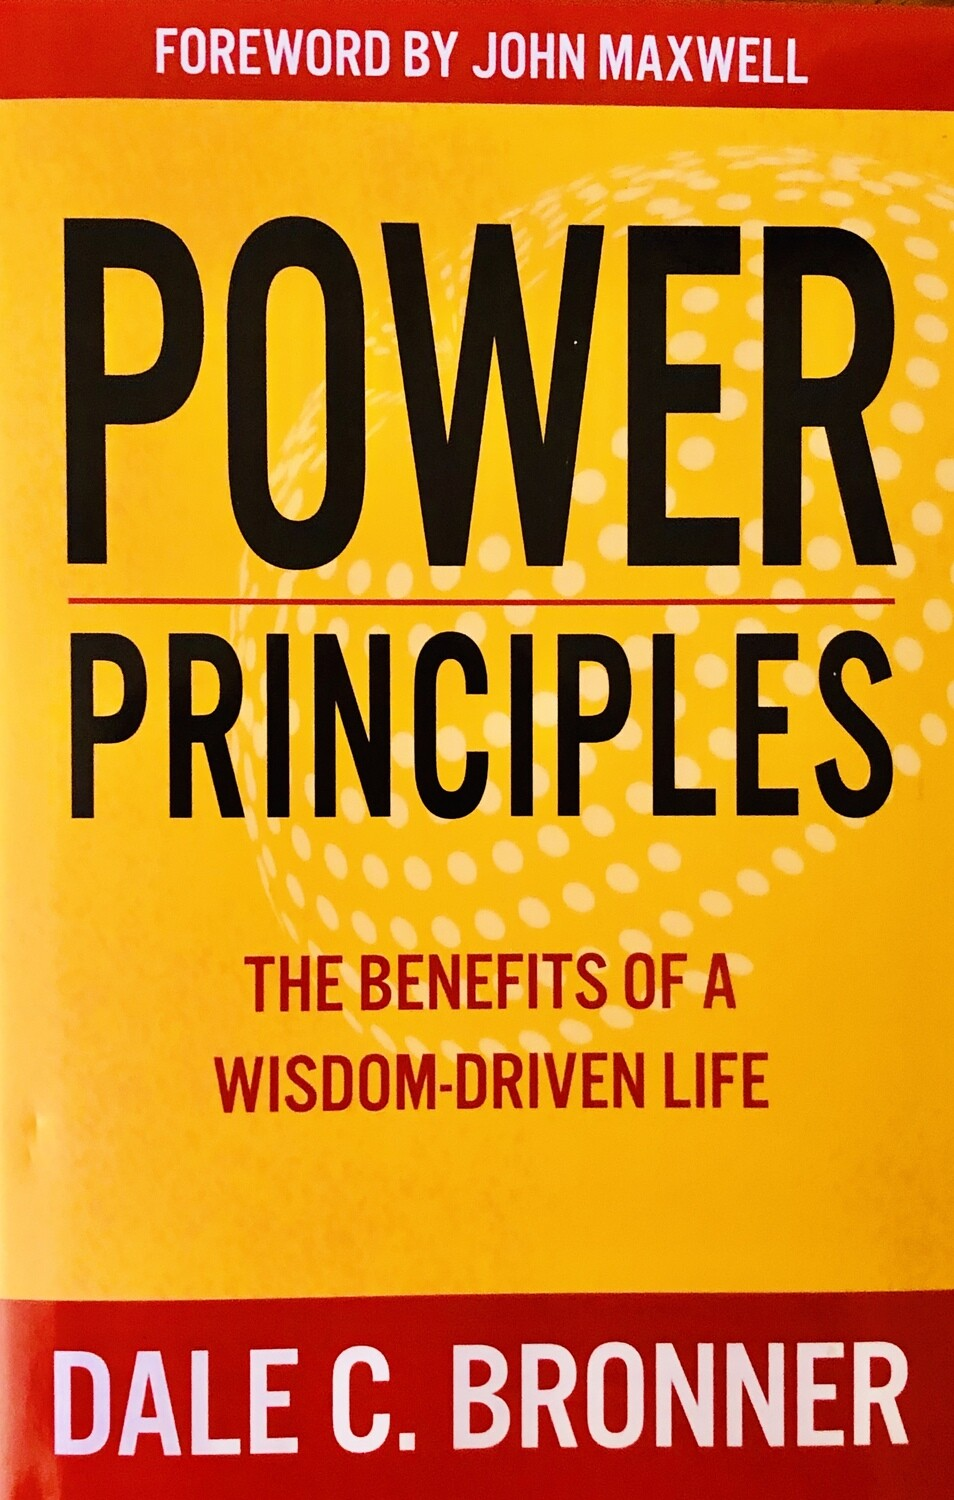 Power Principles: The Benefits of a Wisdom-Driven Life (HARDCOVER)